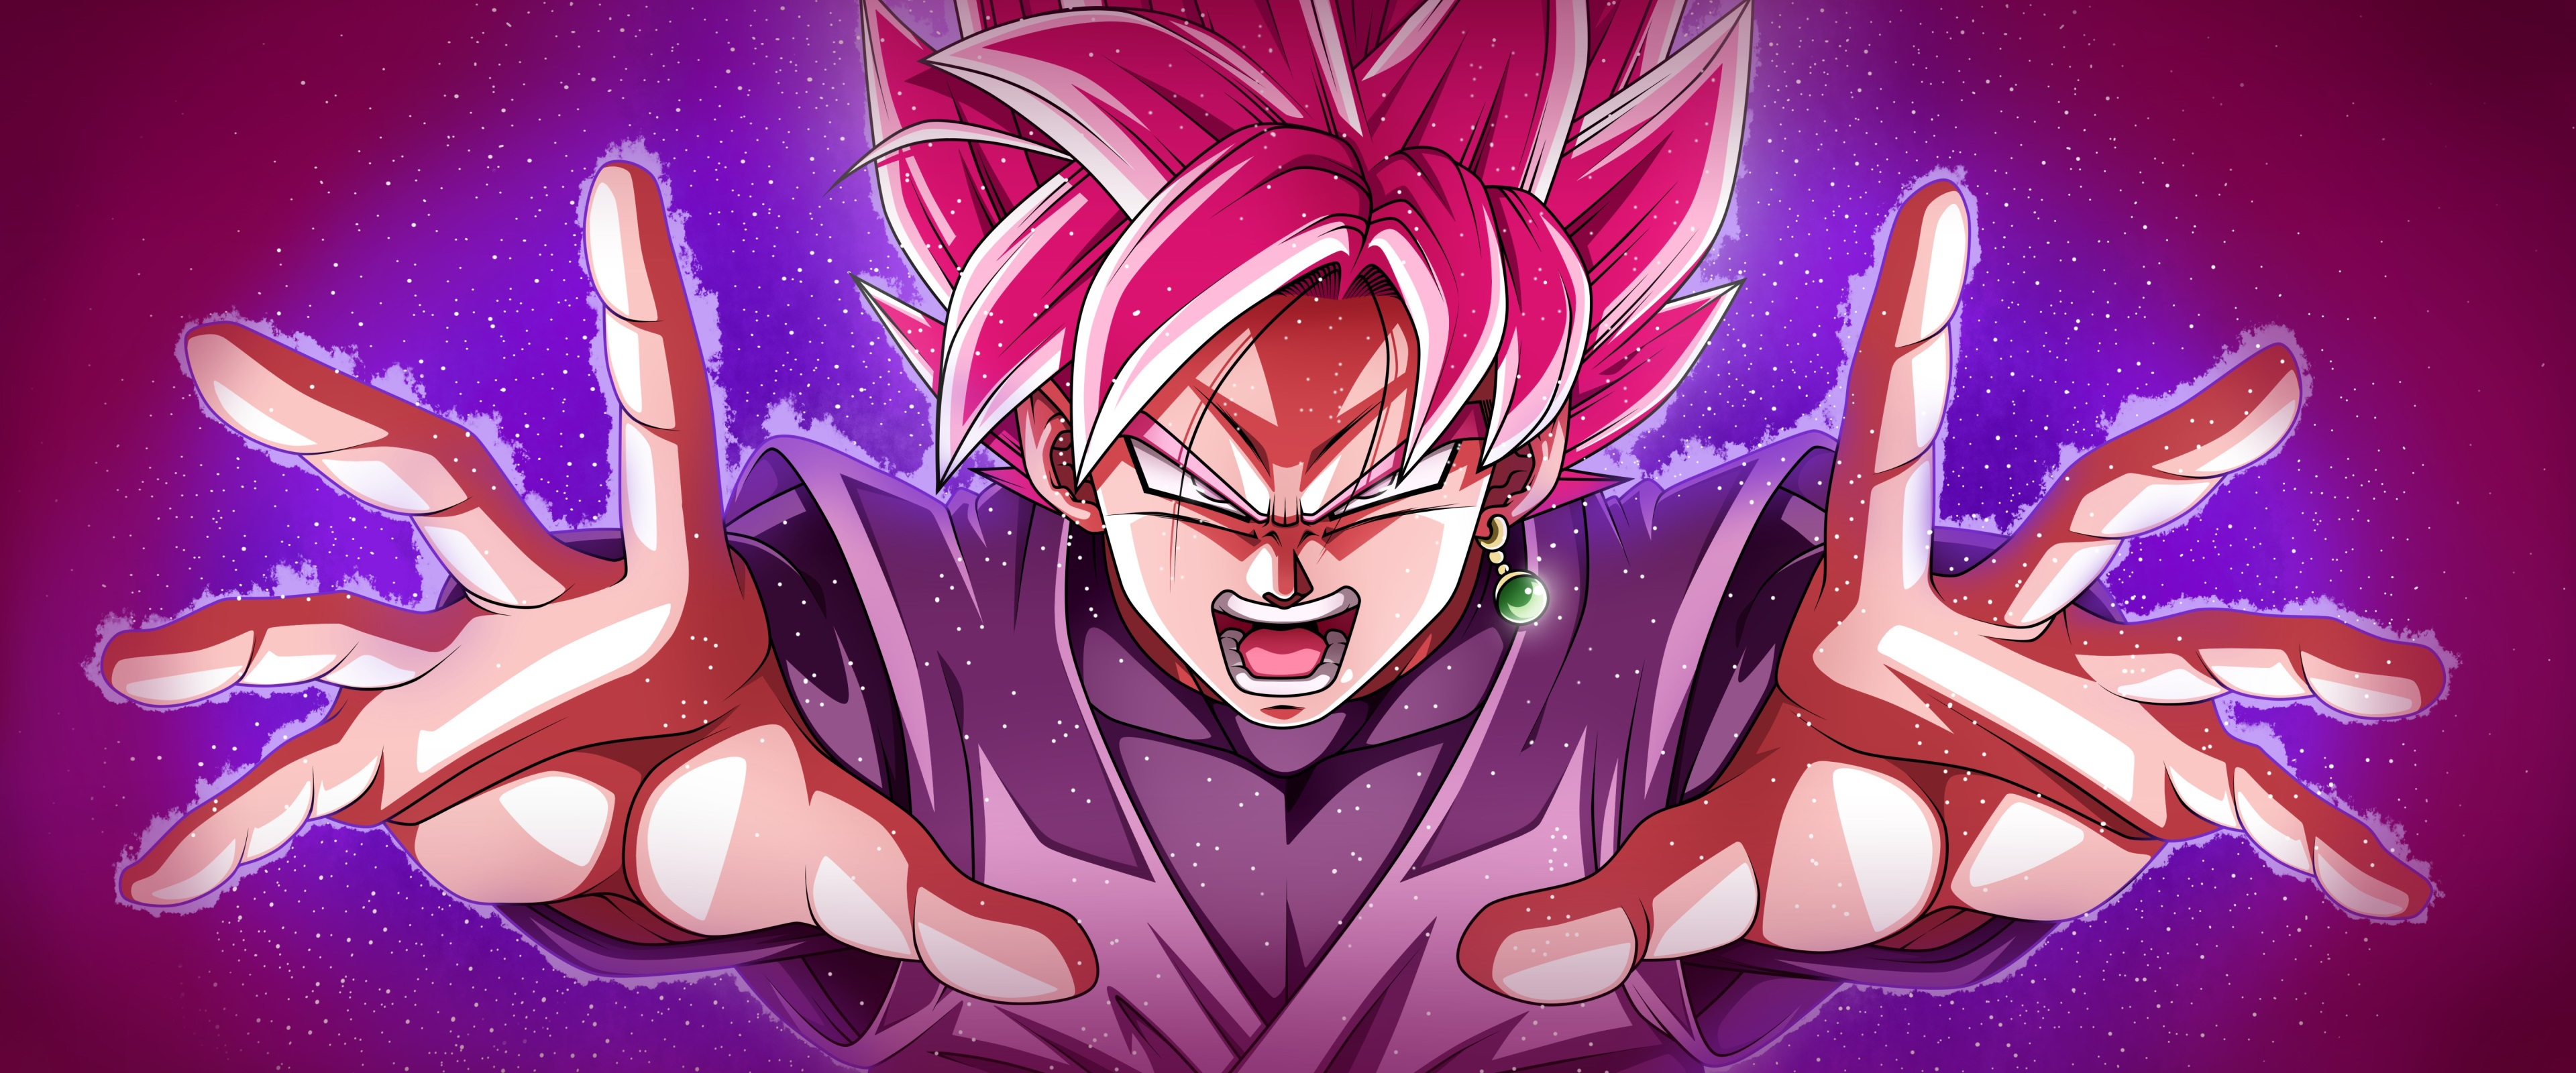 Super Saiyan Rose Goku Black 3840x1600 Wallpaper Teahub Io